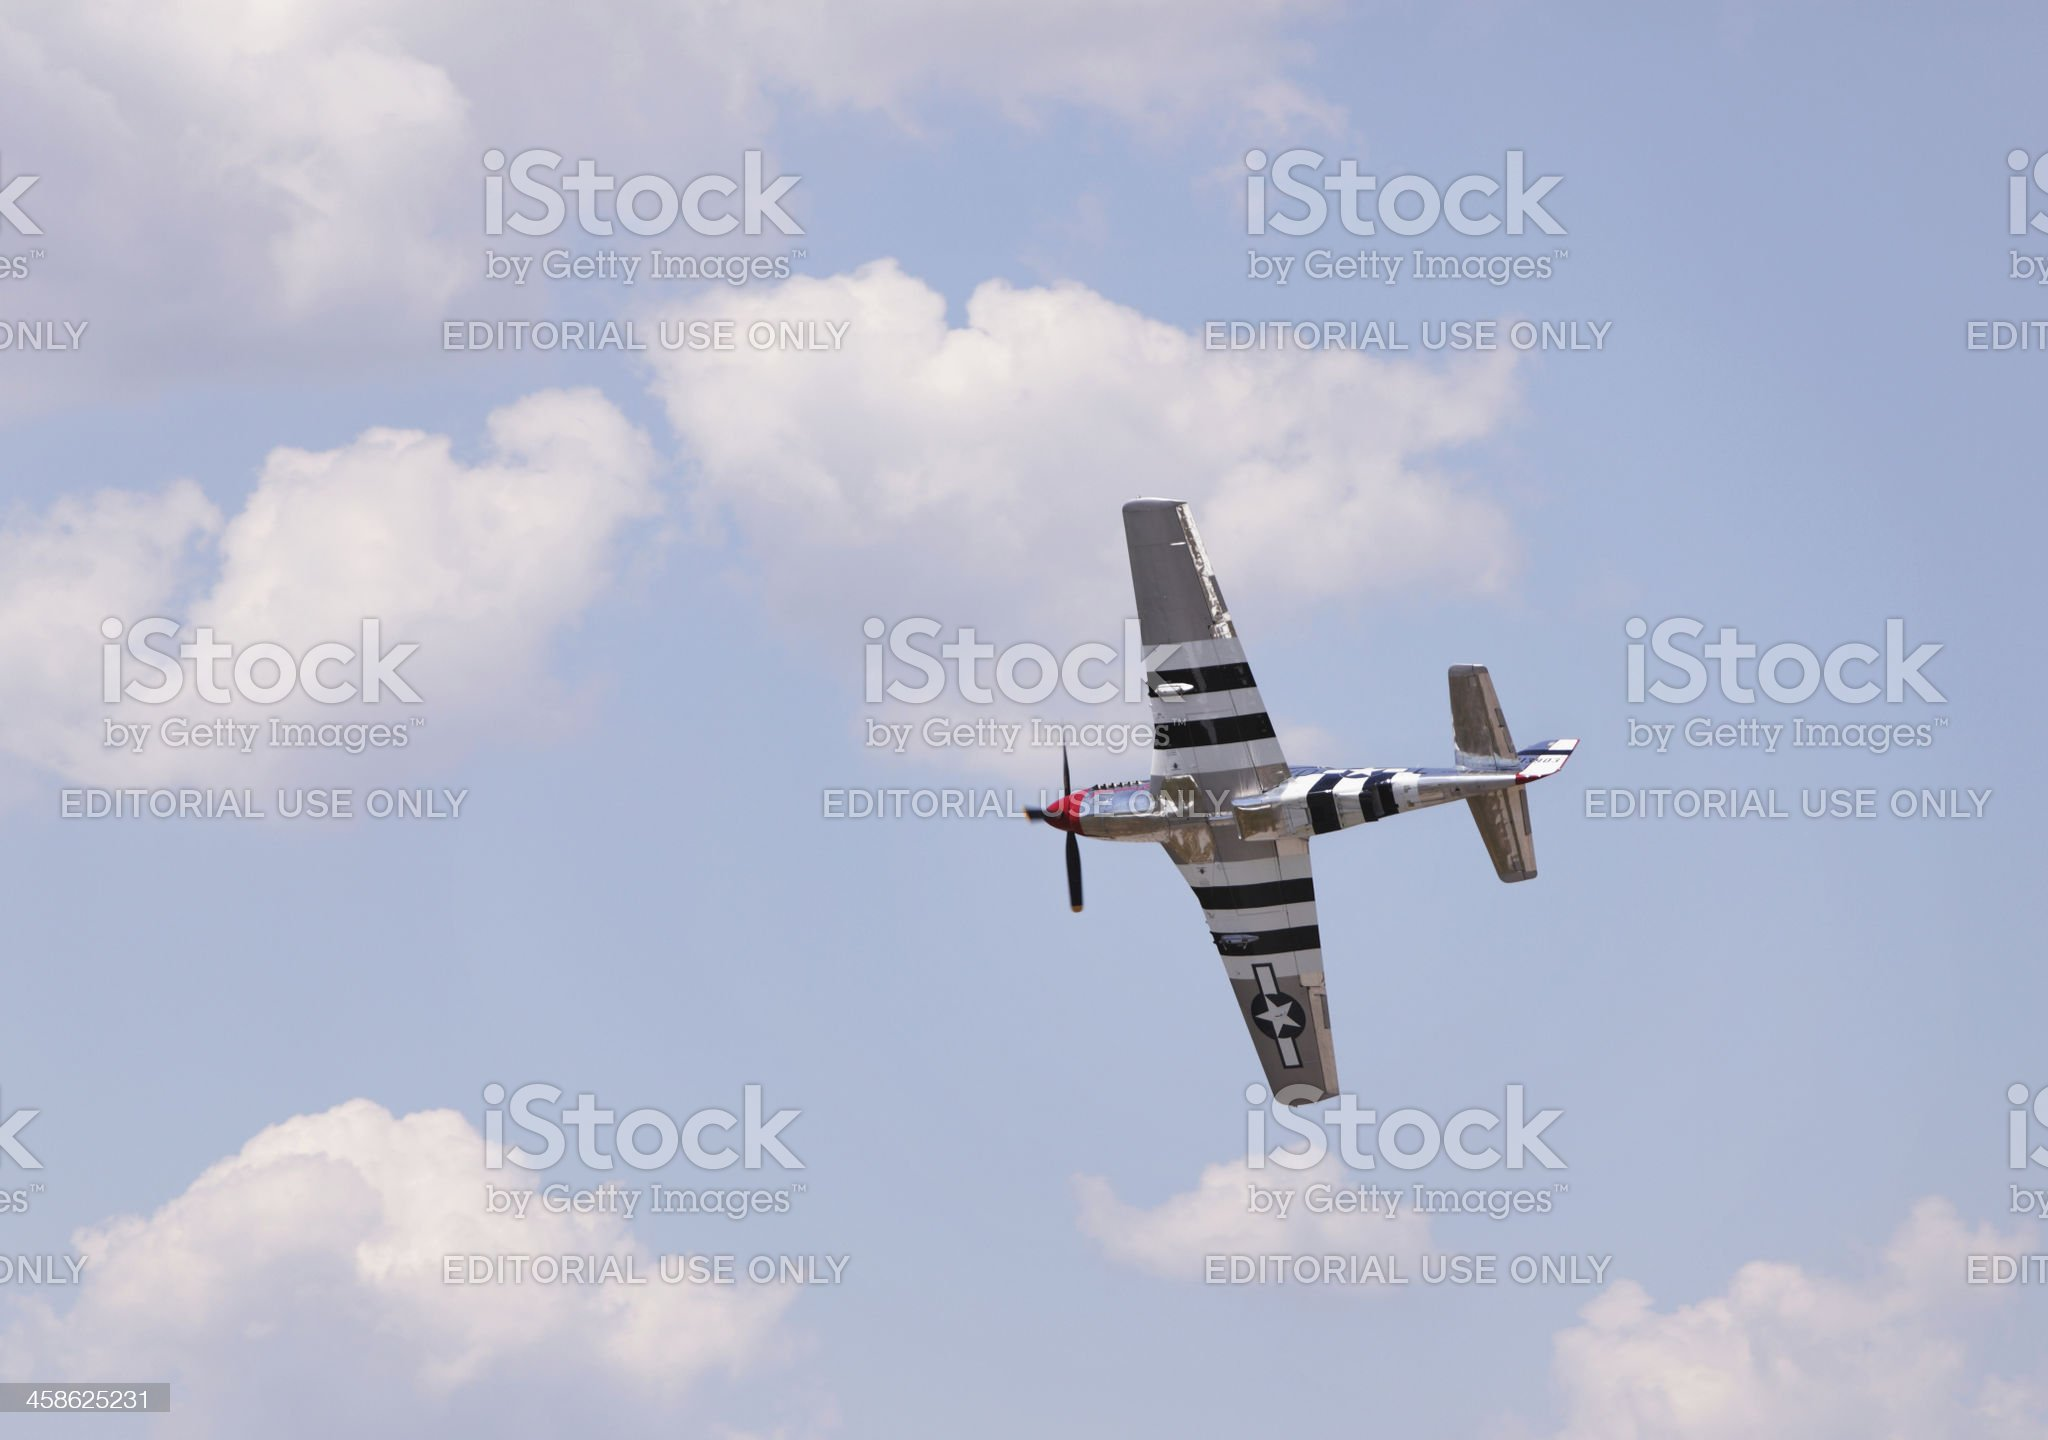 P-51 Mustang WWII Vintage Military Airplane at Airshow royalty-free stock photo